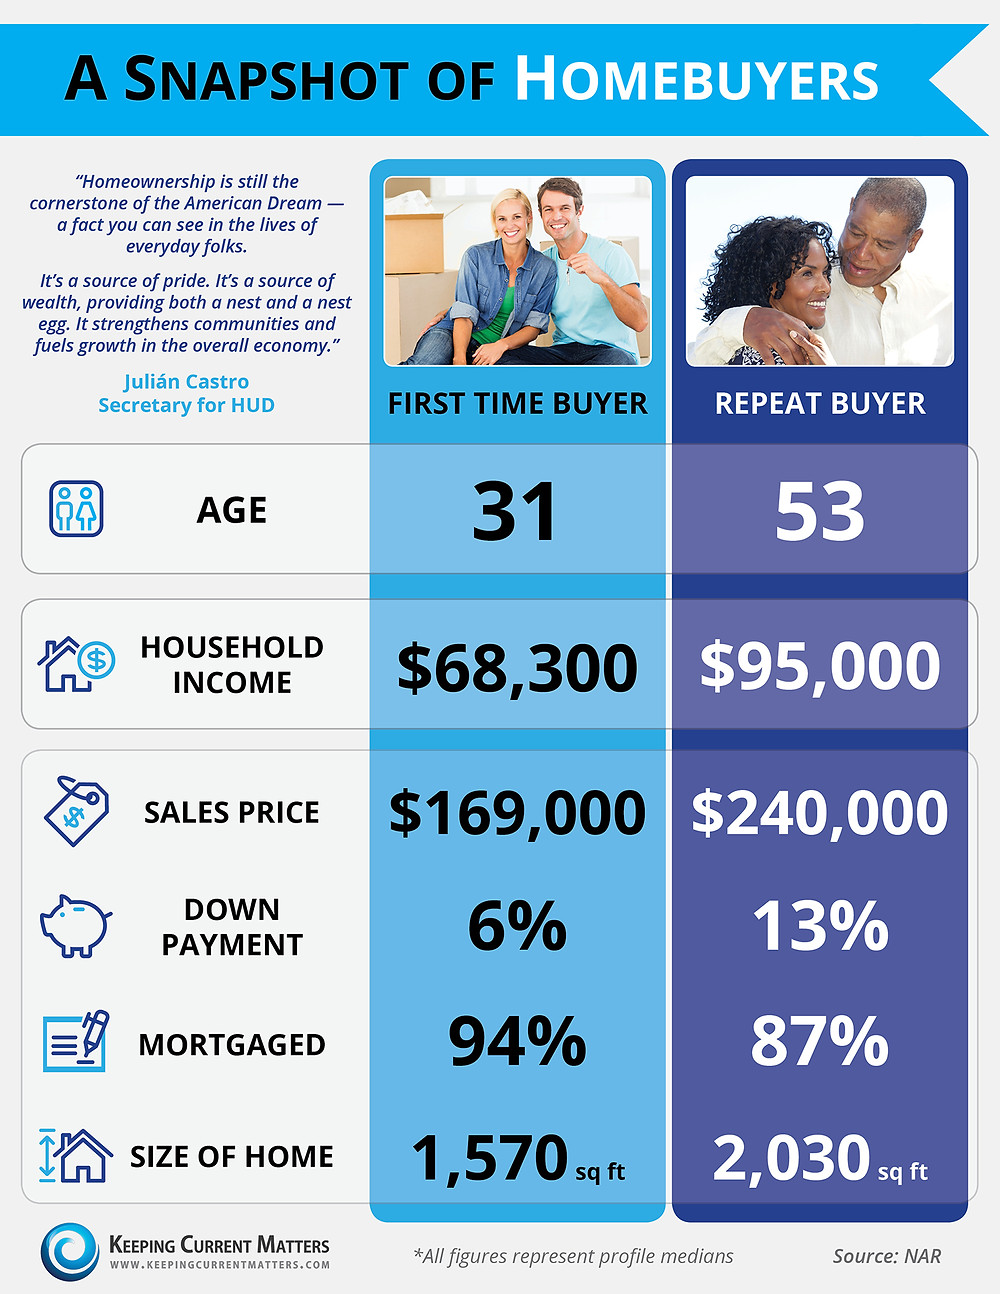 A Snapshot of Homebuyers | Keeping Current Matters